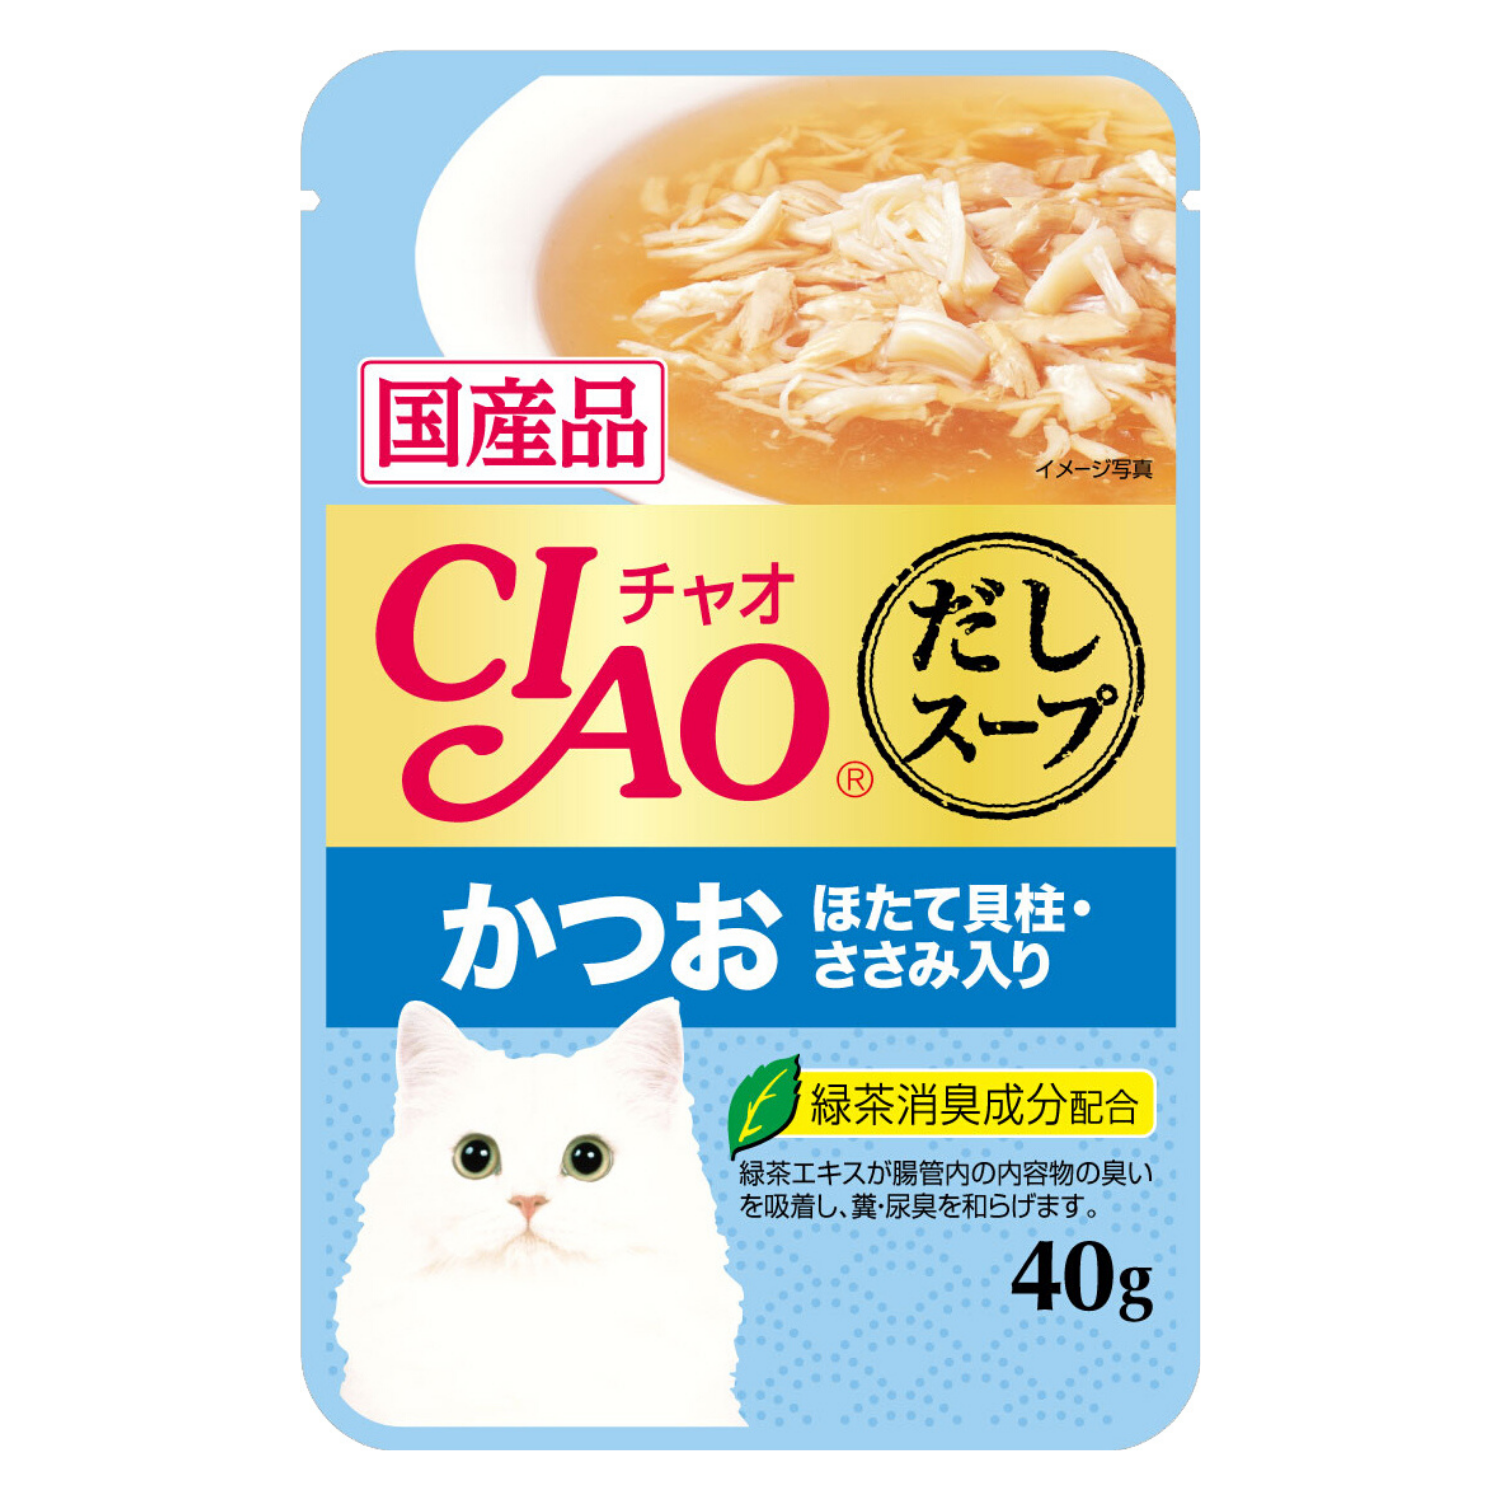 Ciao Clear Soup Pouch Tuna Katsuo & Scallop Chicken Fillet - 40g